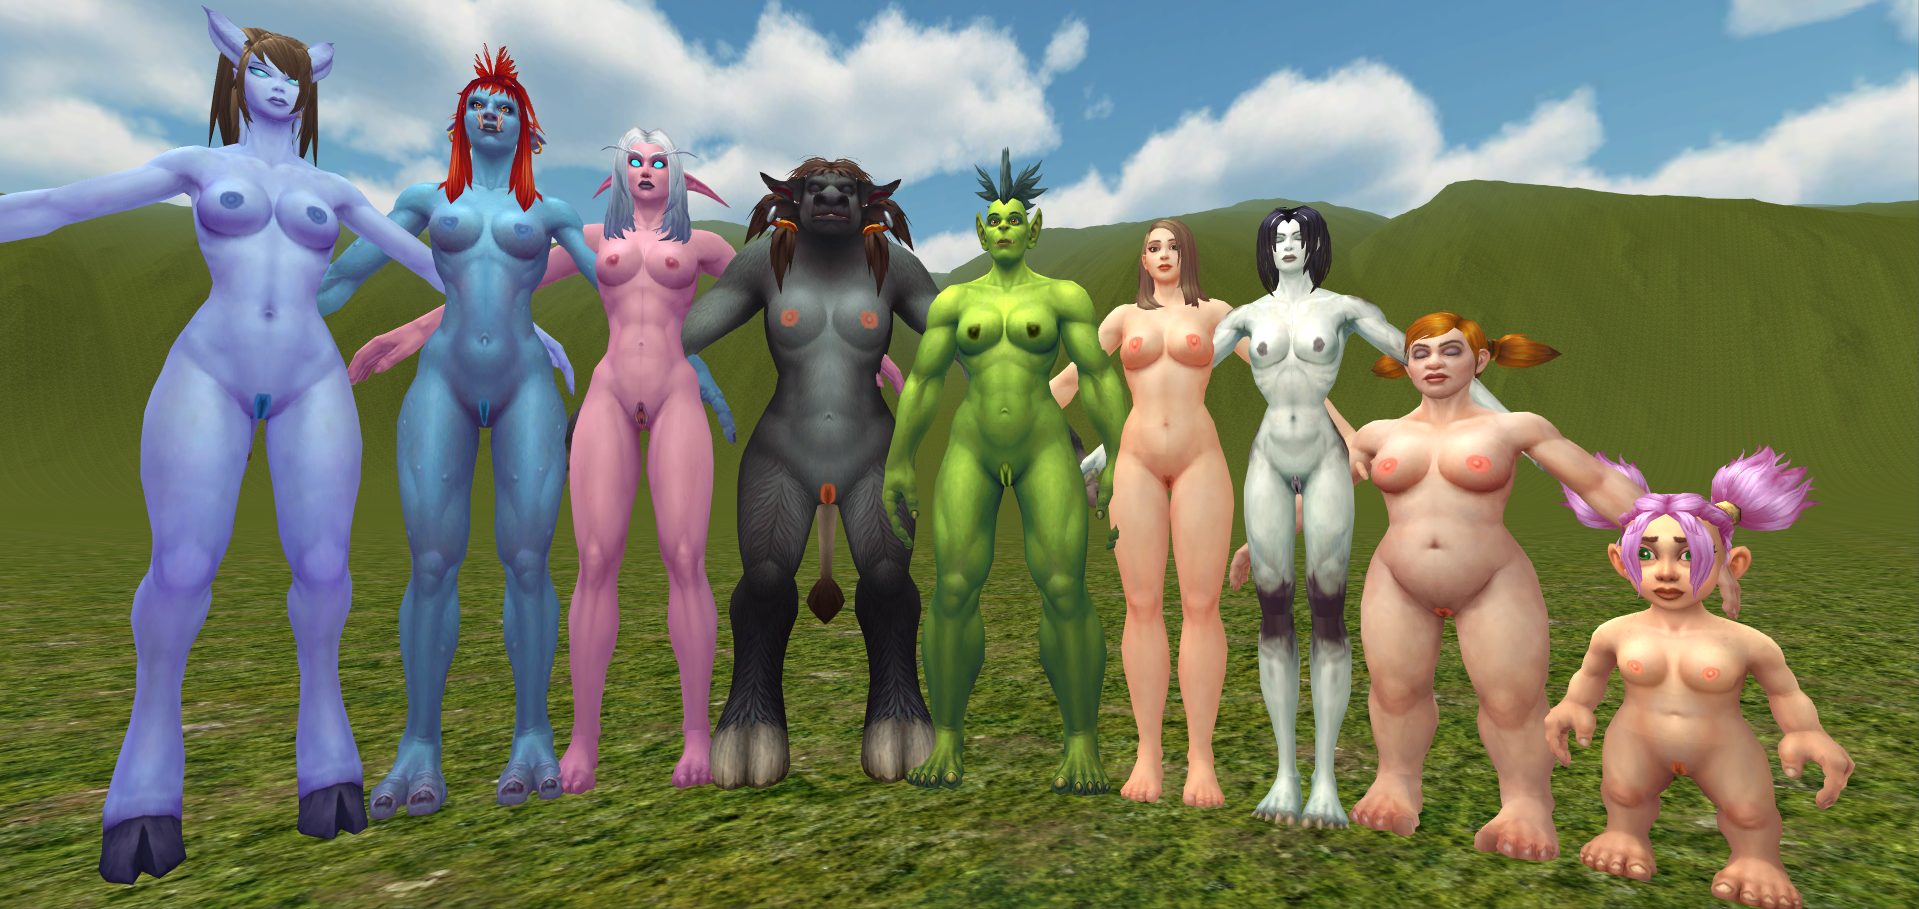 Best nude patch world of warcraft